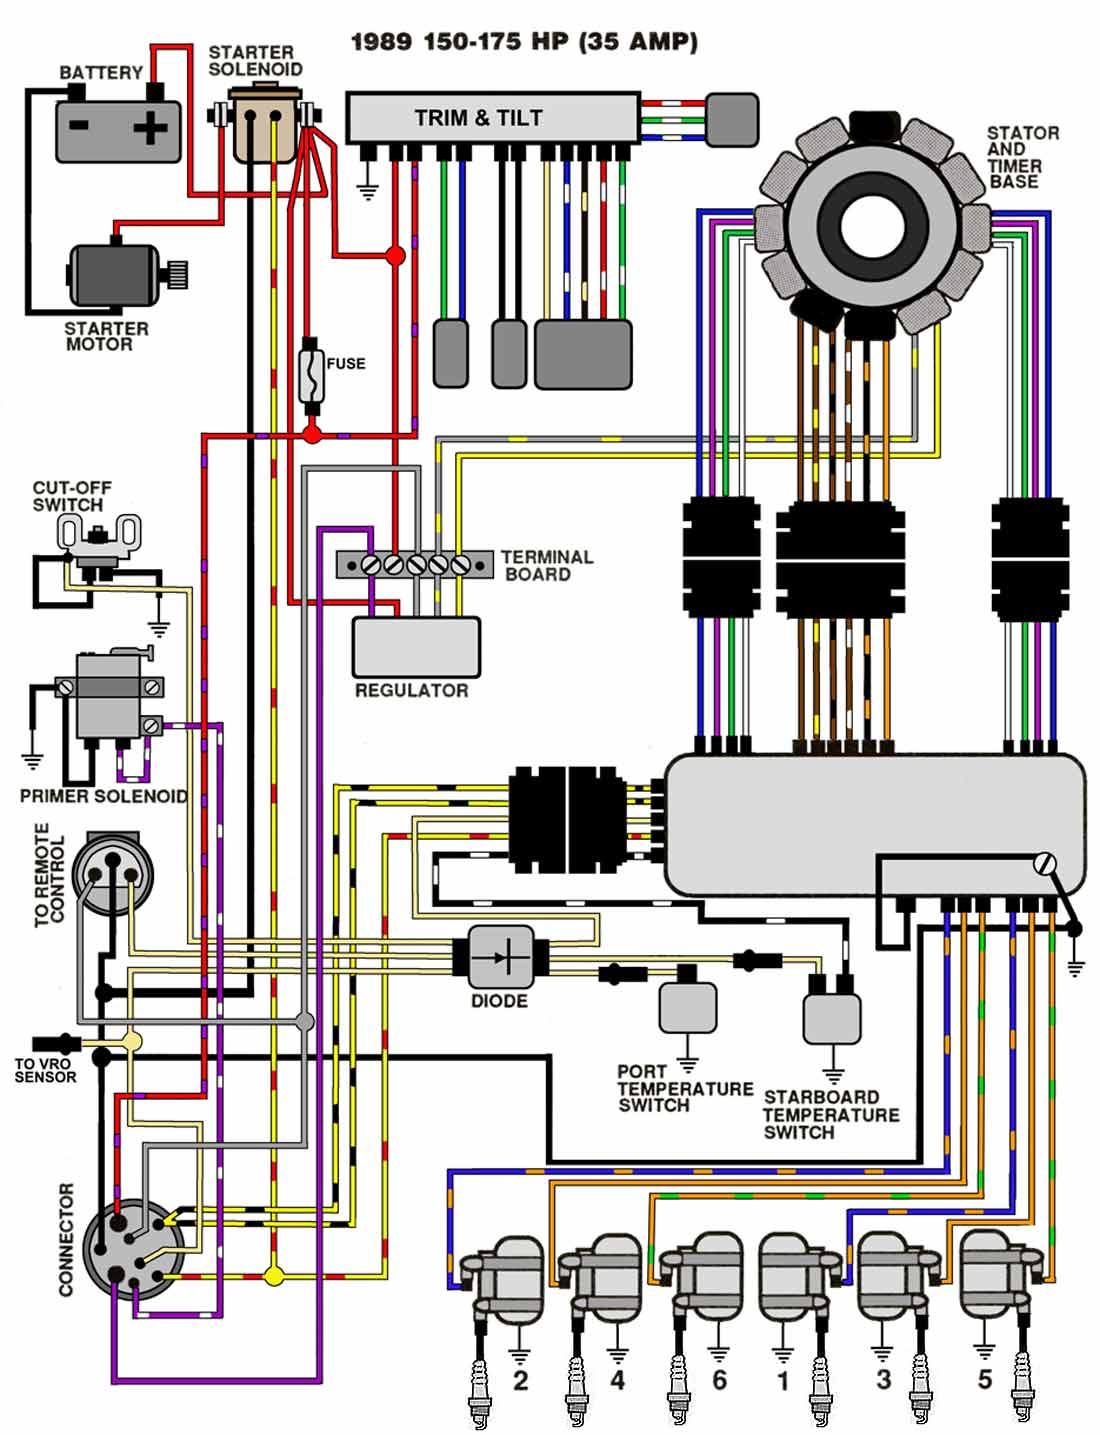 Johnson 100 Hp Wiring Diagram Free Picture johnson wiring ... on johnson outboard ignition switch wiring, johnson outboard manual pdf, johnson outboard 150 wiring diagram, johnson seahorse 25 hp motor, johnson outboard motor wiring diagram, johnson wiring color codes, johnson 115 outboard schematic,